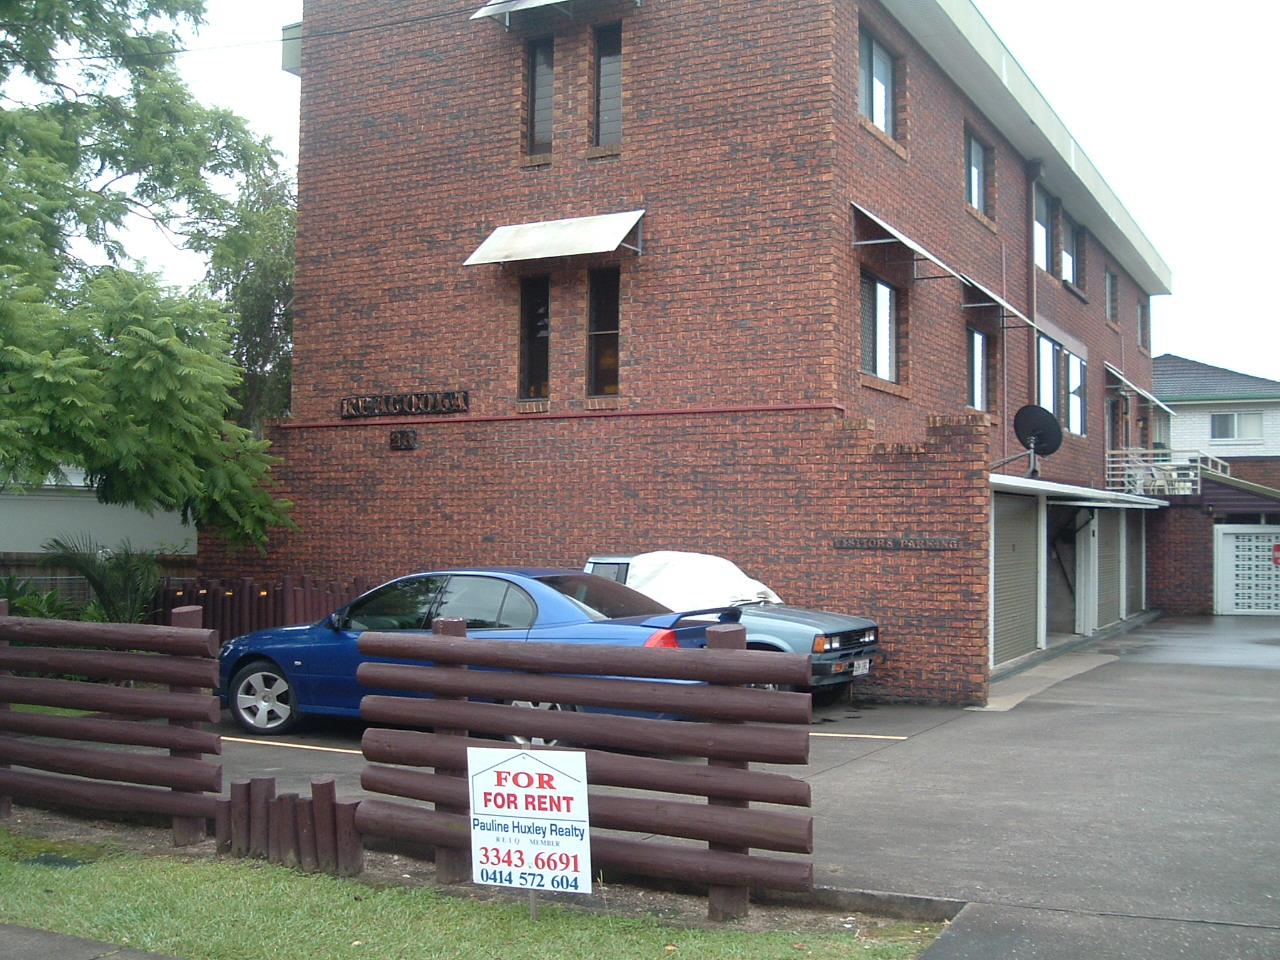 2 BEDROOM GROUND FLOOR UNIT. SINGLE LOCK UP GARAGE. WALK TO TRAIN, BUS AND SHOPS.